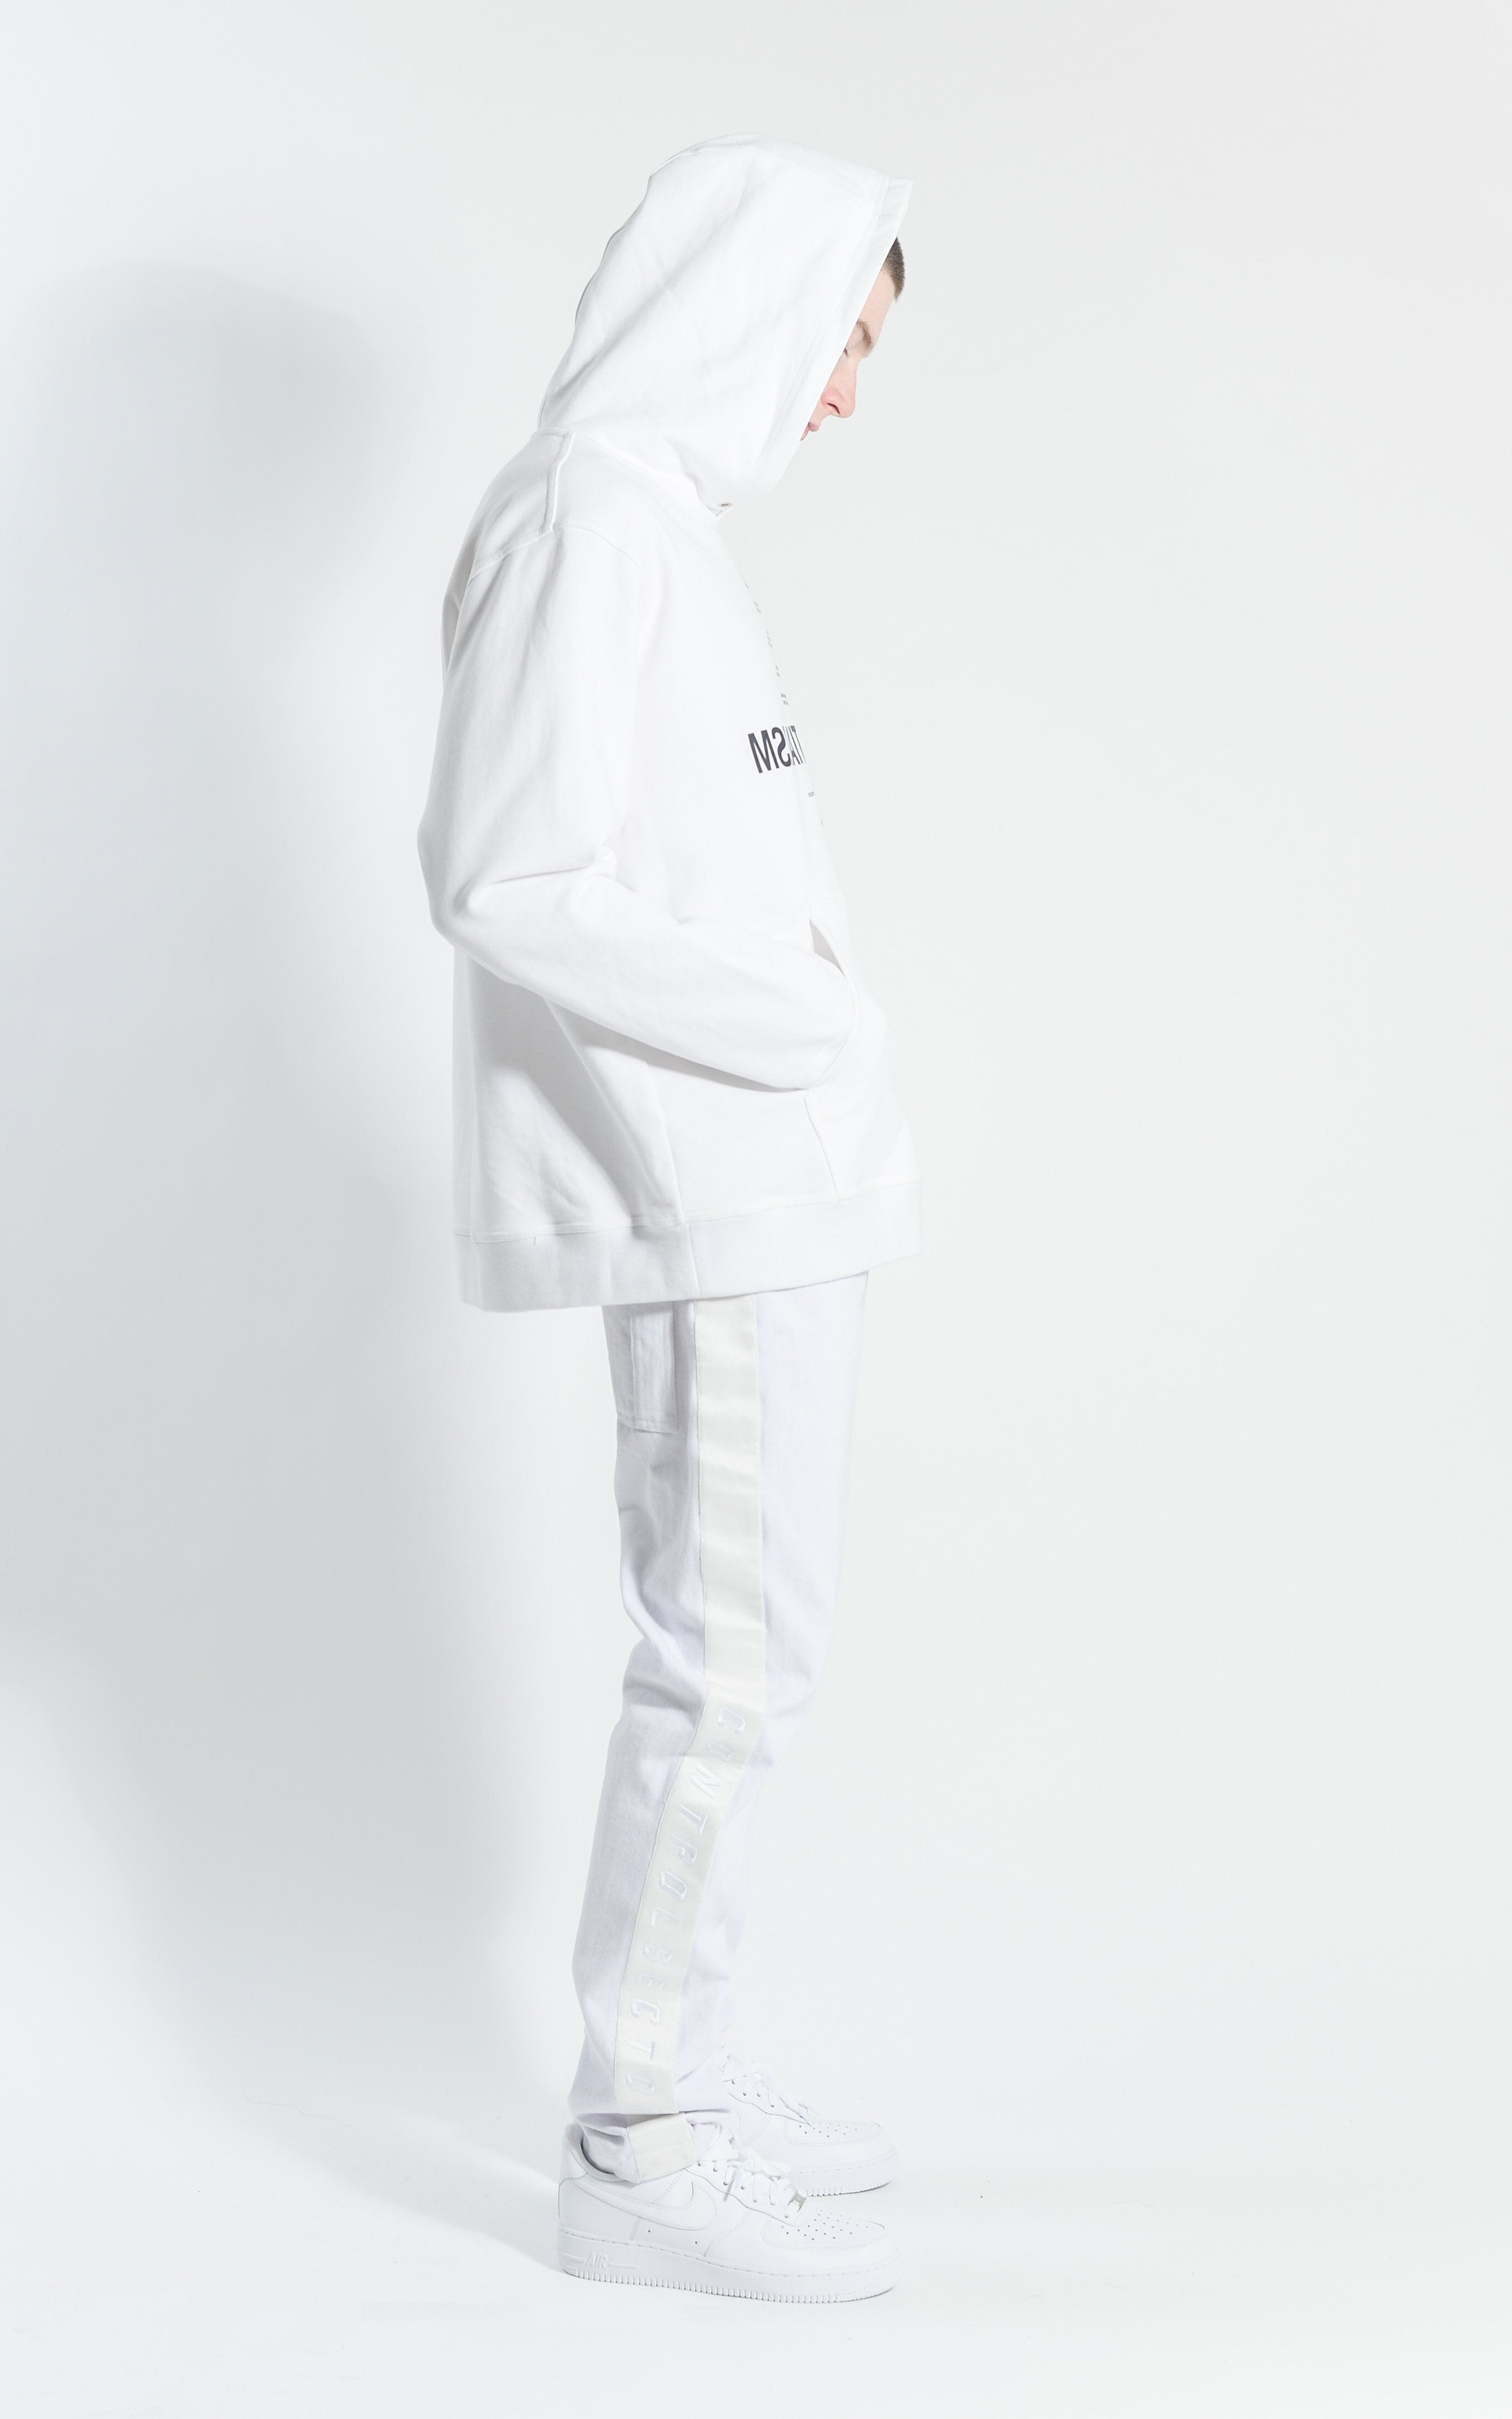 CON1715-01 EXISTENTIALISM HOODIE - WHITE/ BLACK PRINT